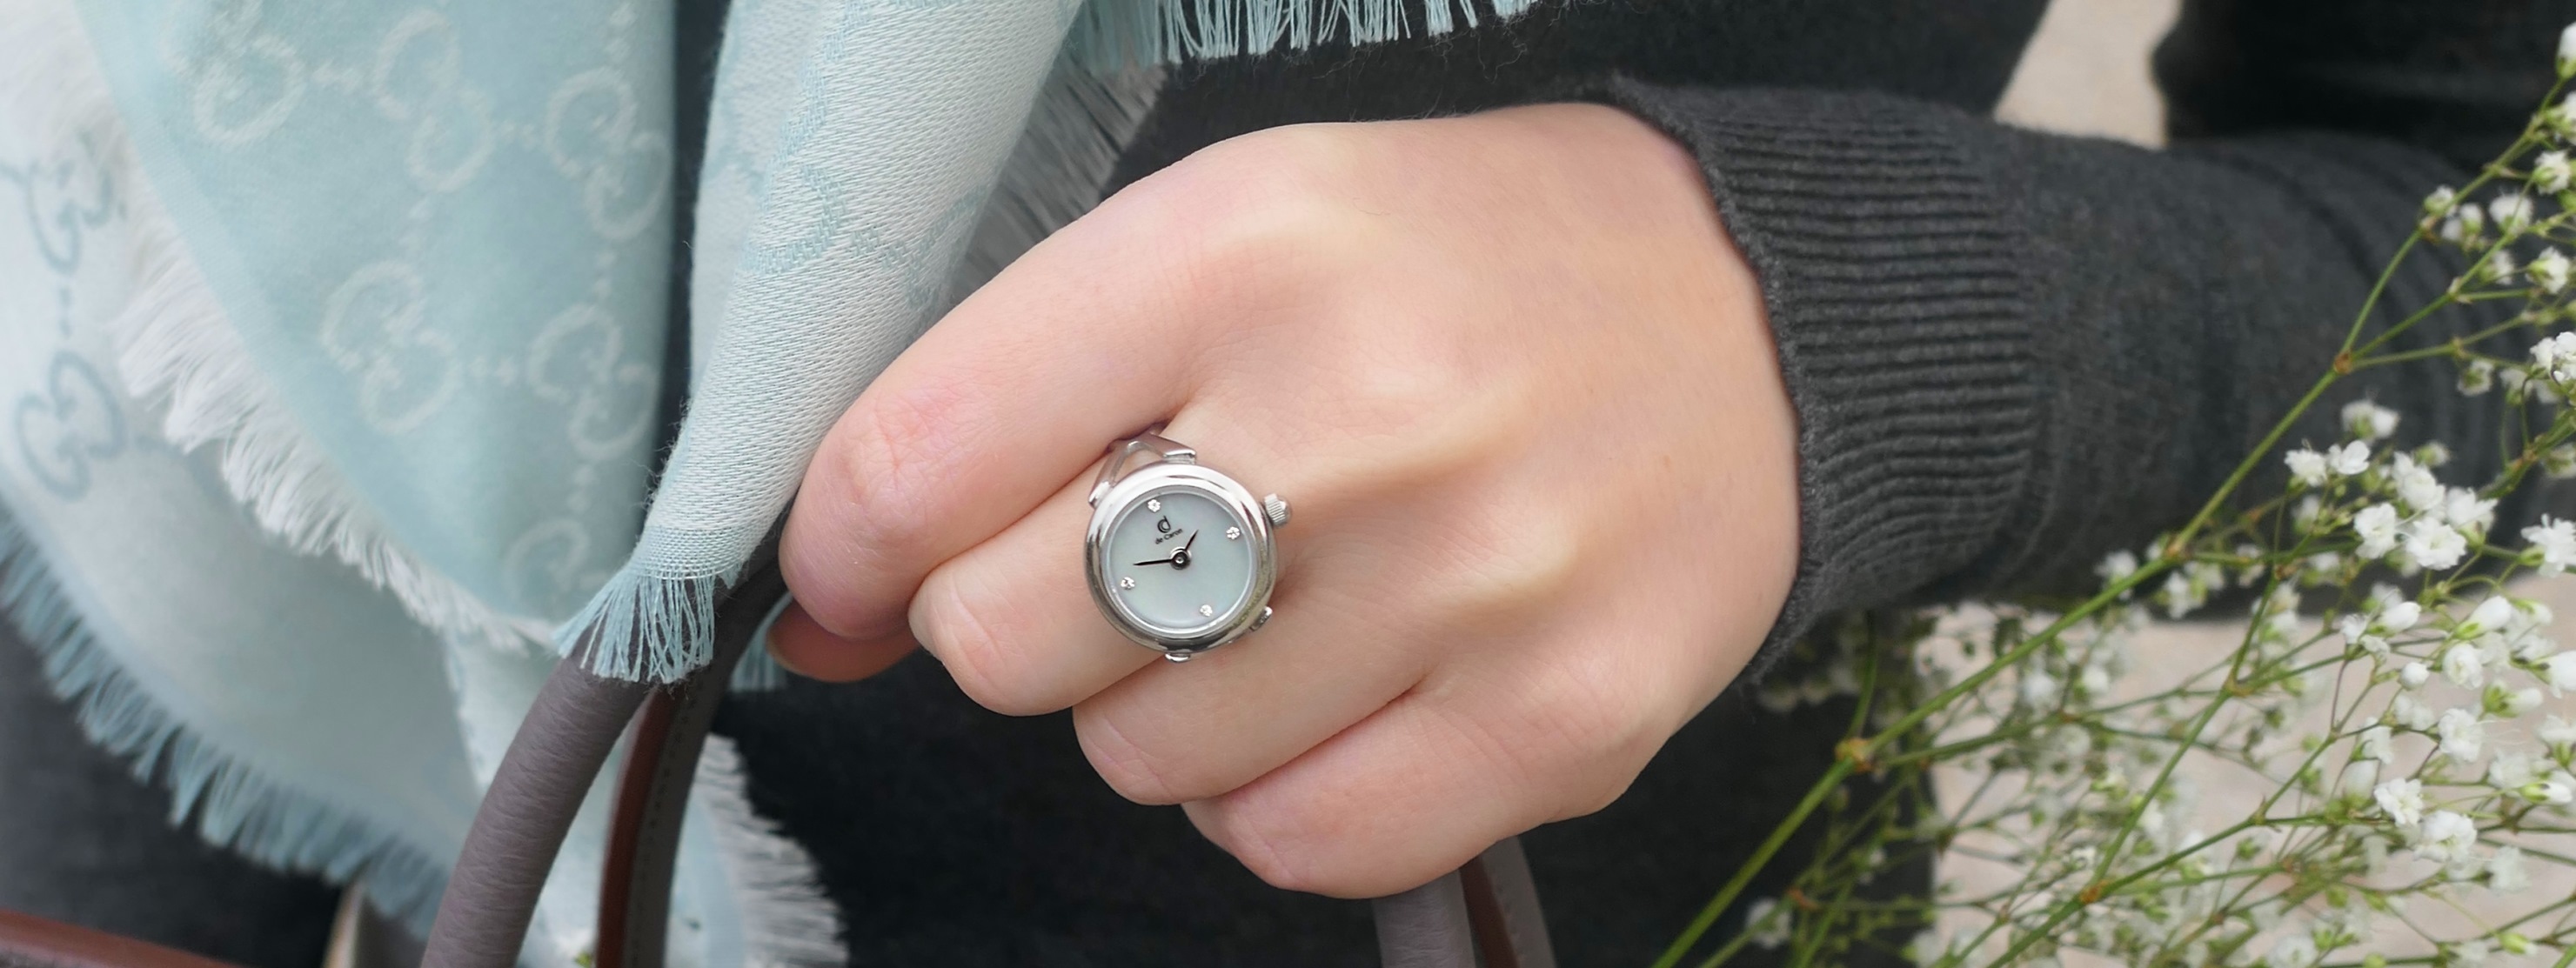 de caron watch ring